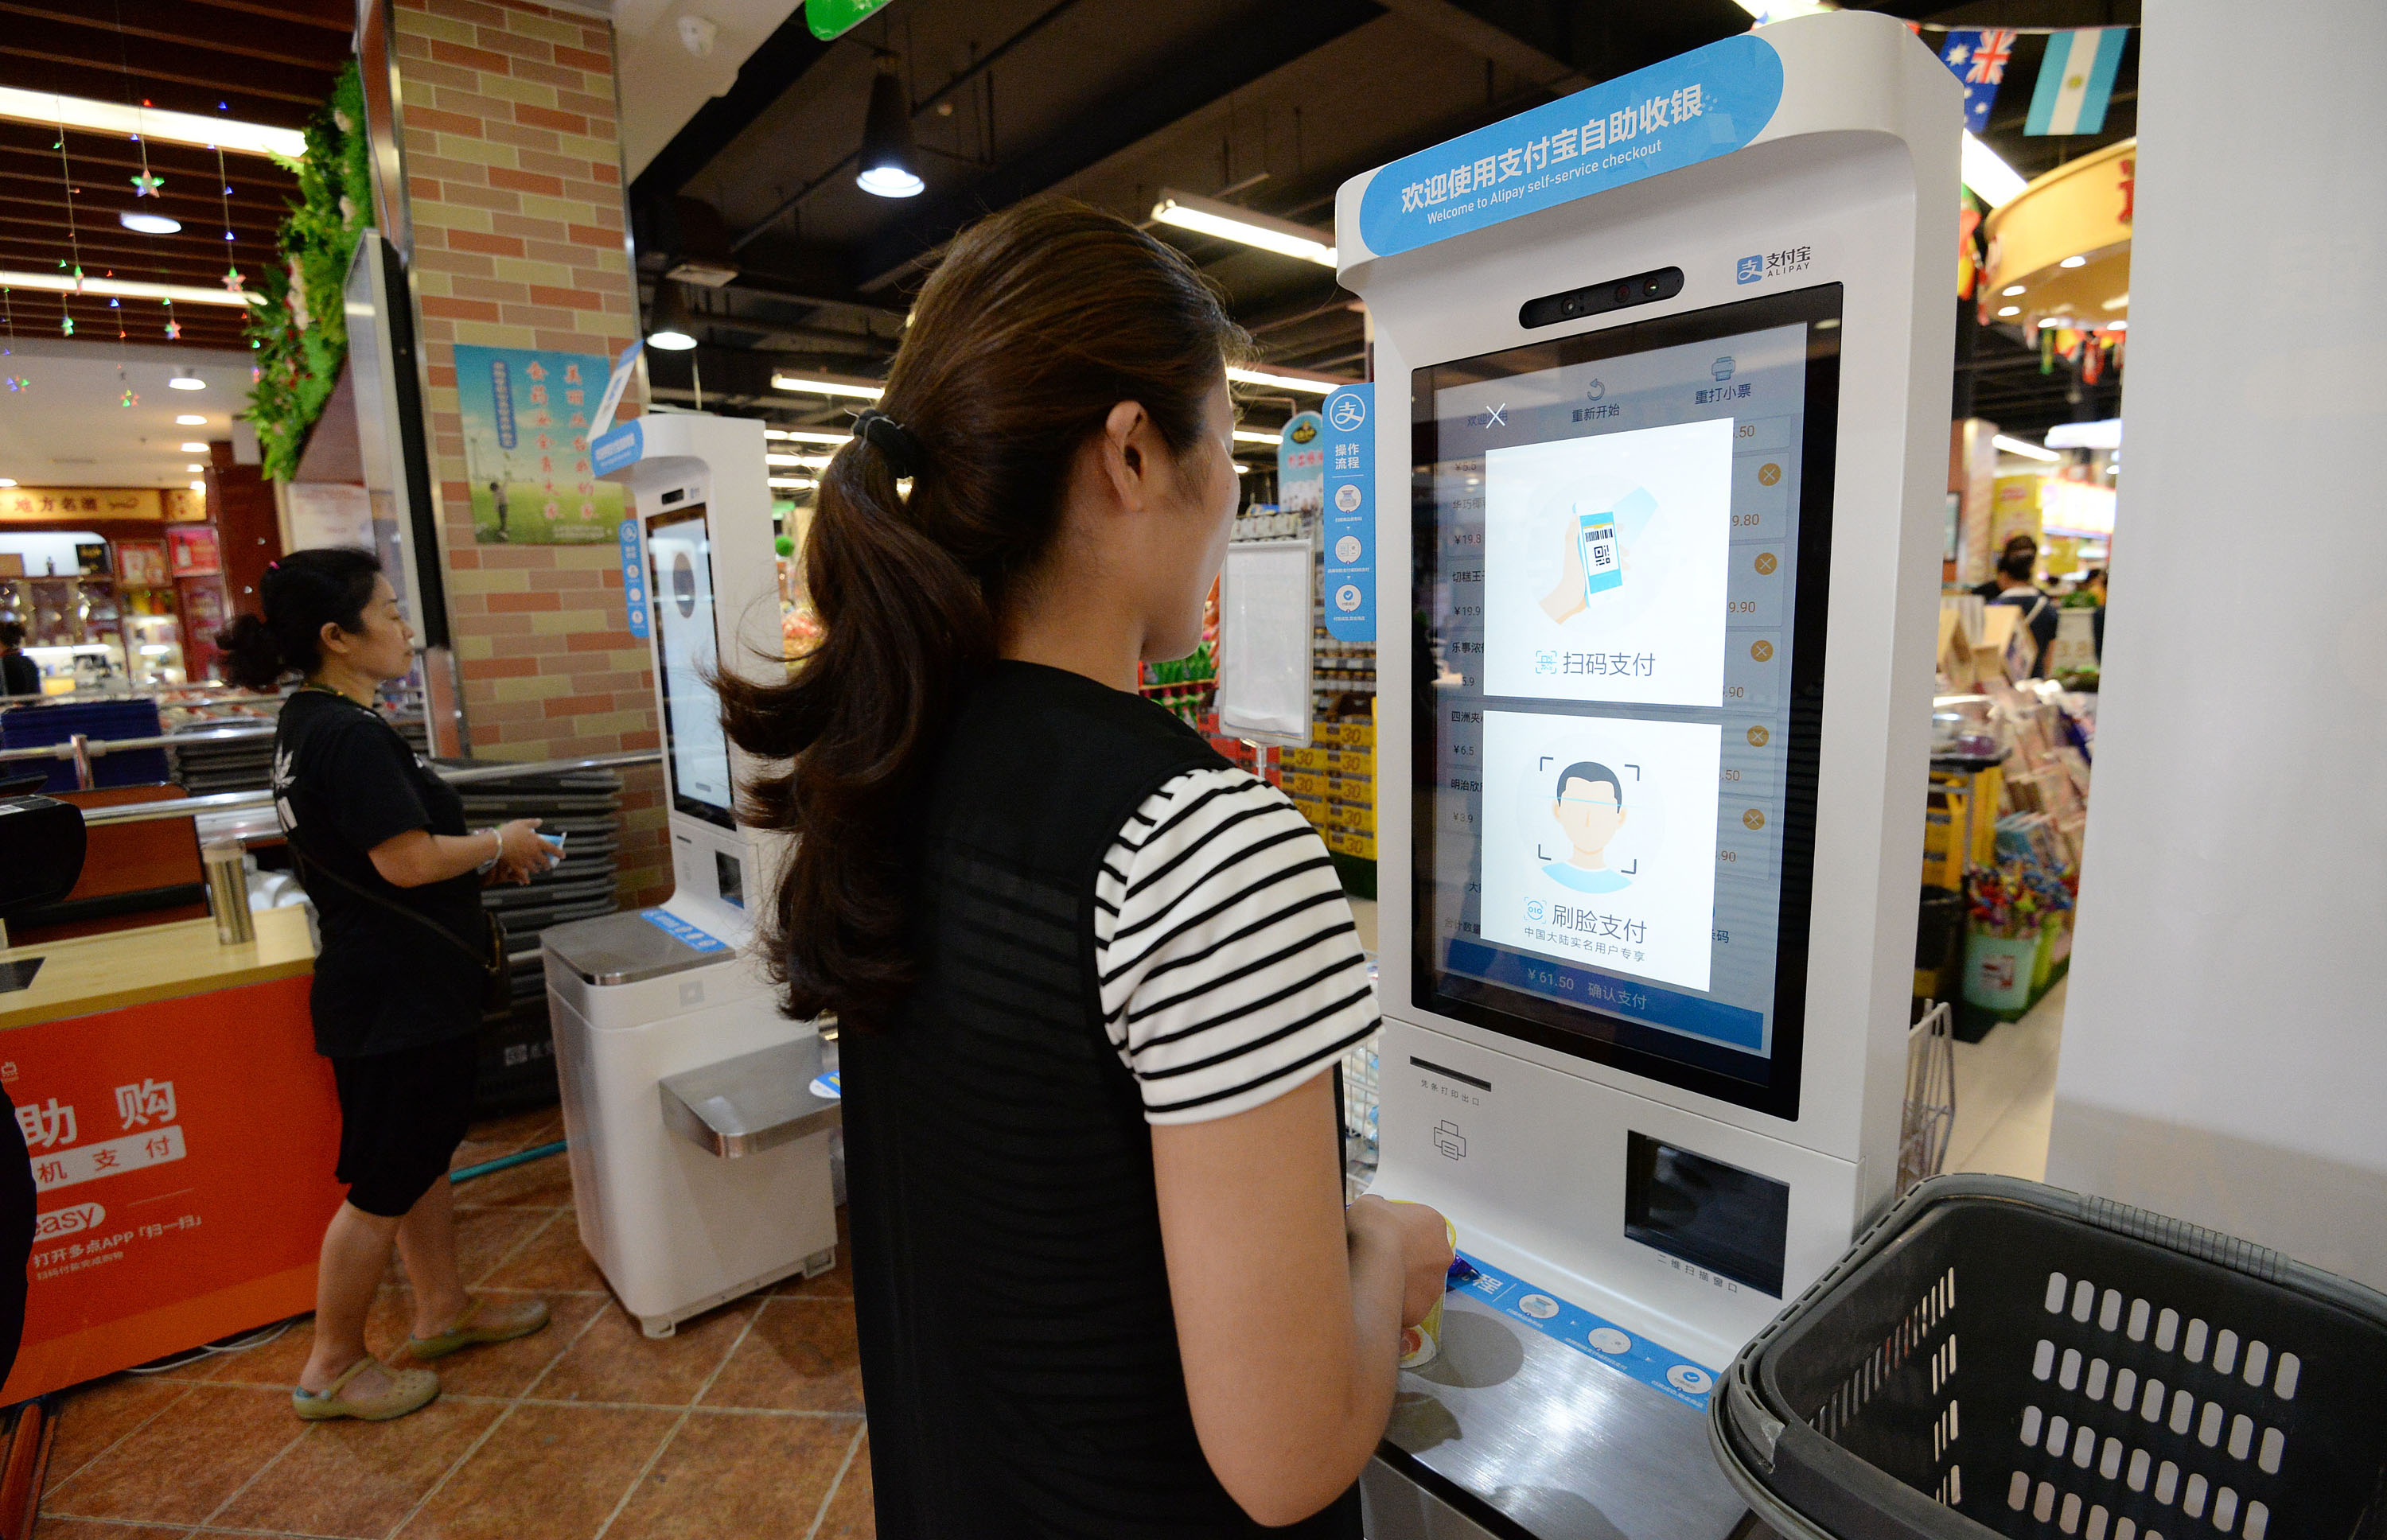 Is facial recognition the future of payment in China?